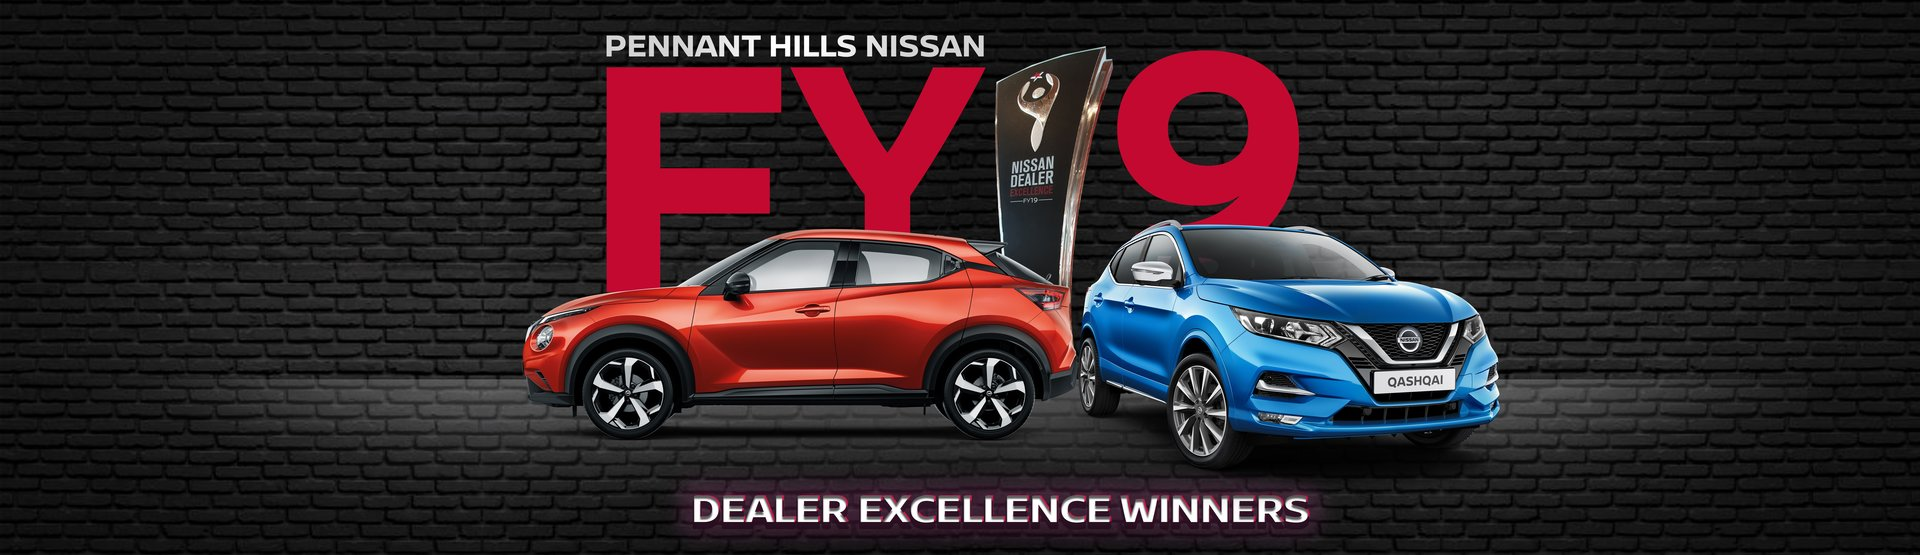 Pennant Hills Nissan | Dealer Excellence Award